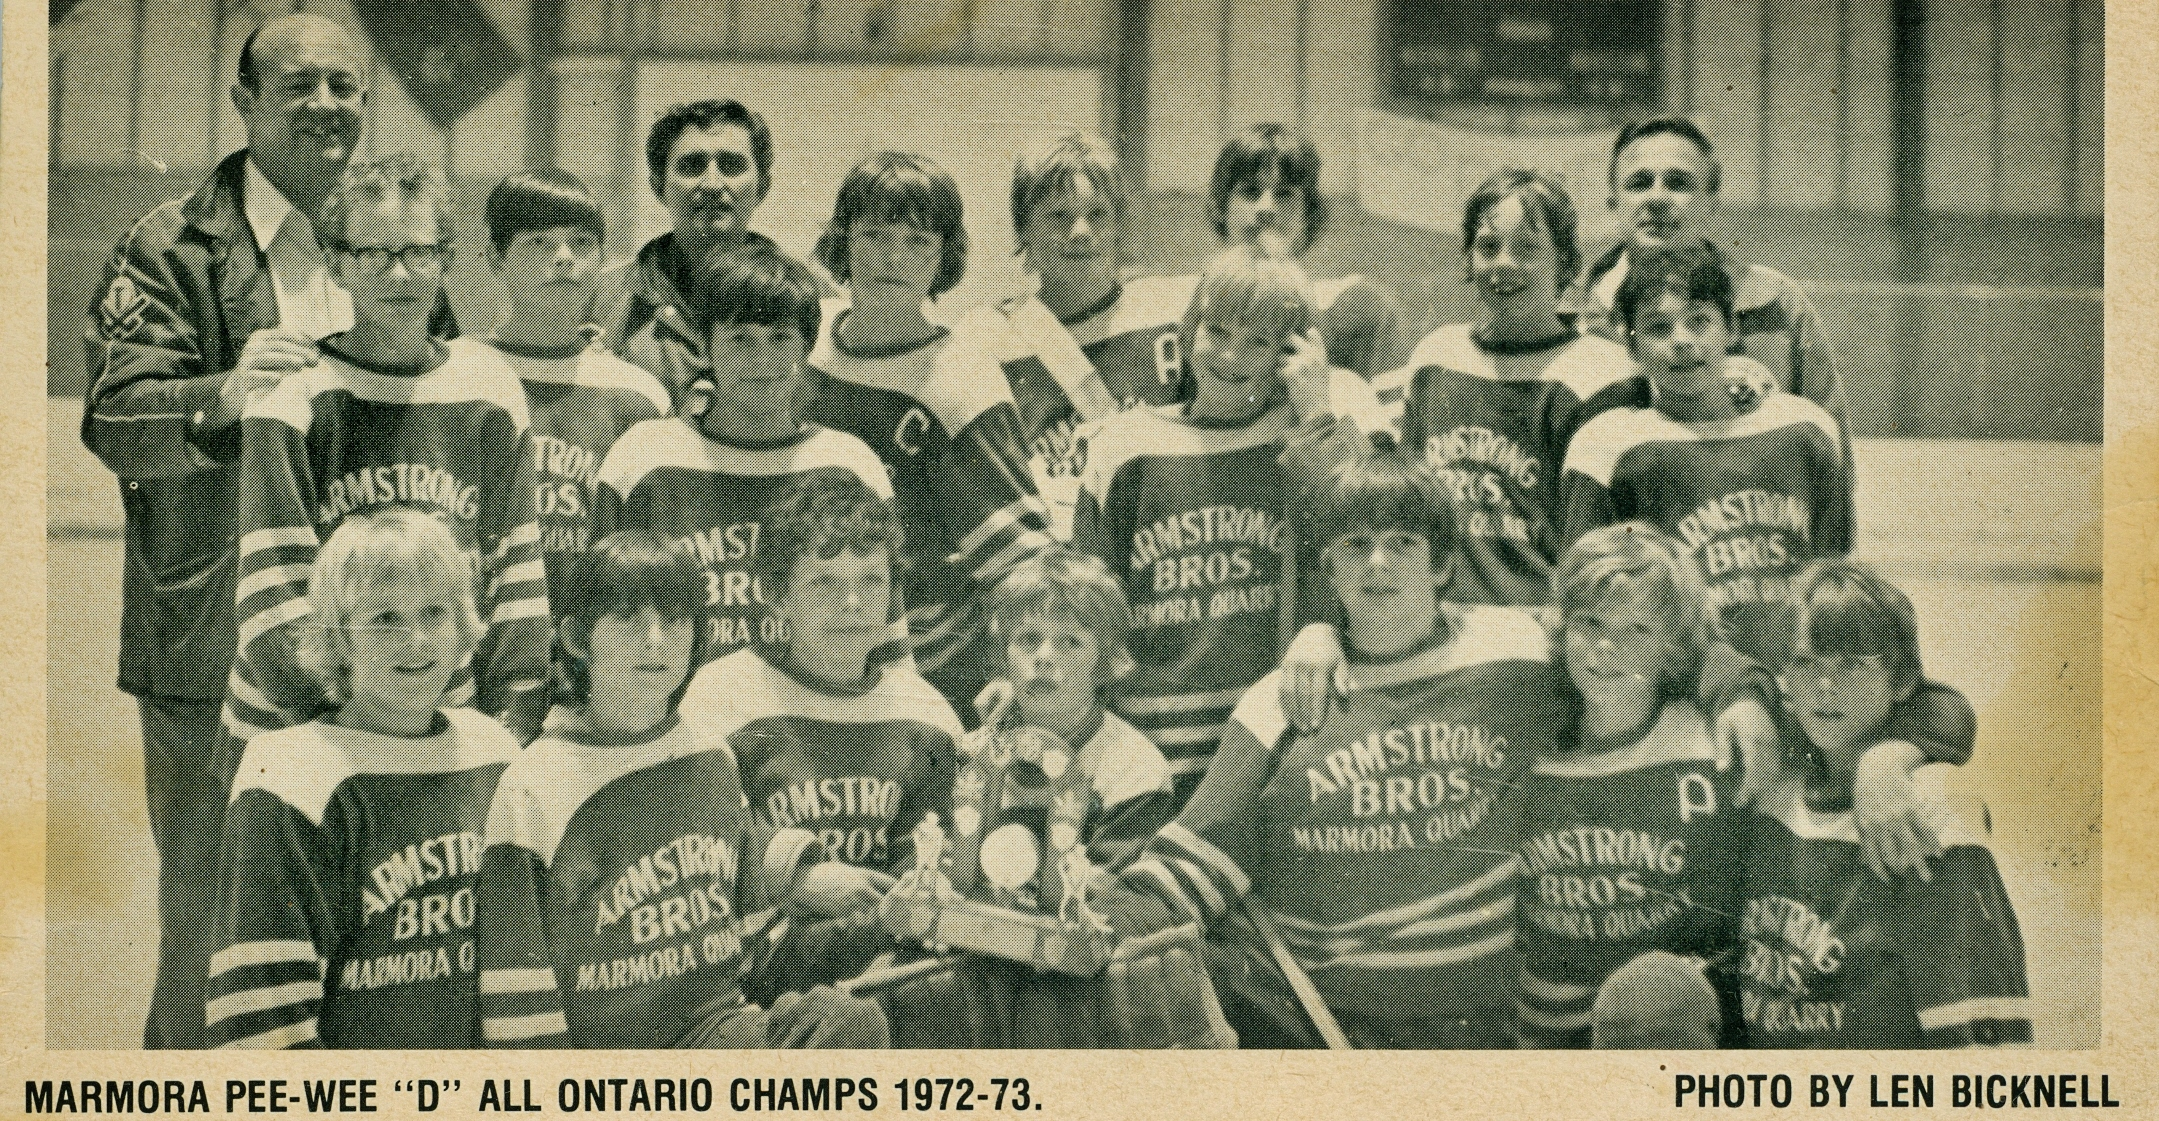 Pee Wee All Ontario Champs 1972-73